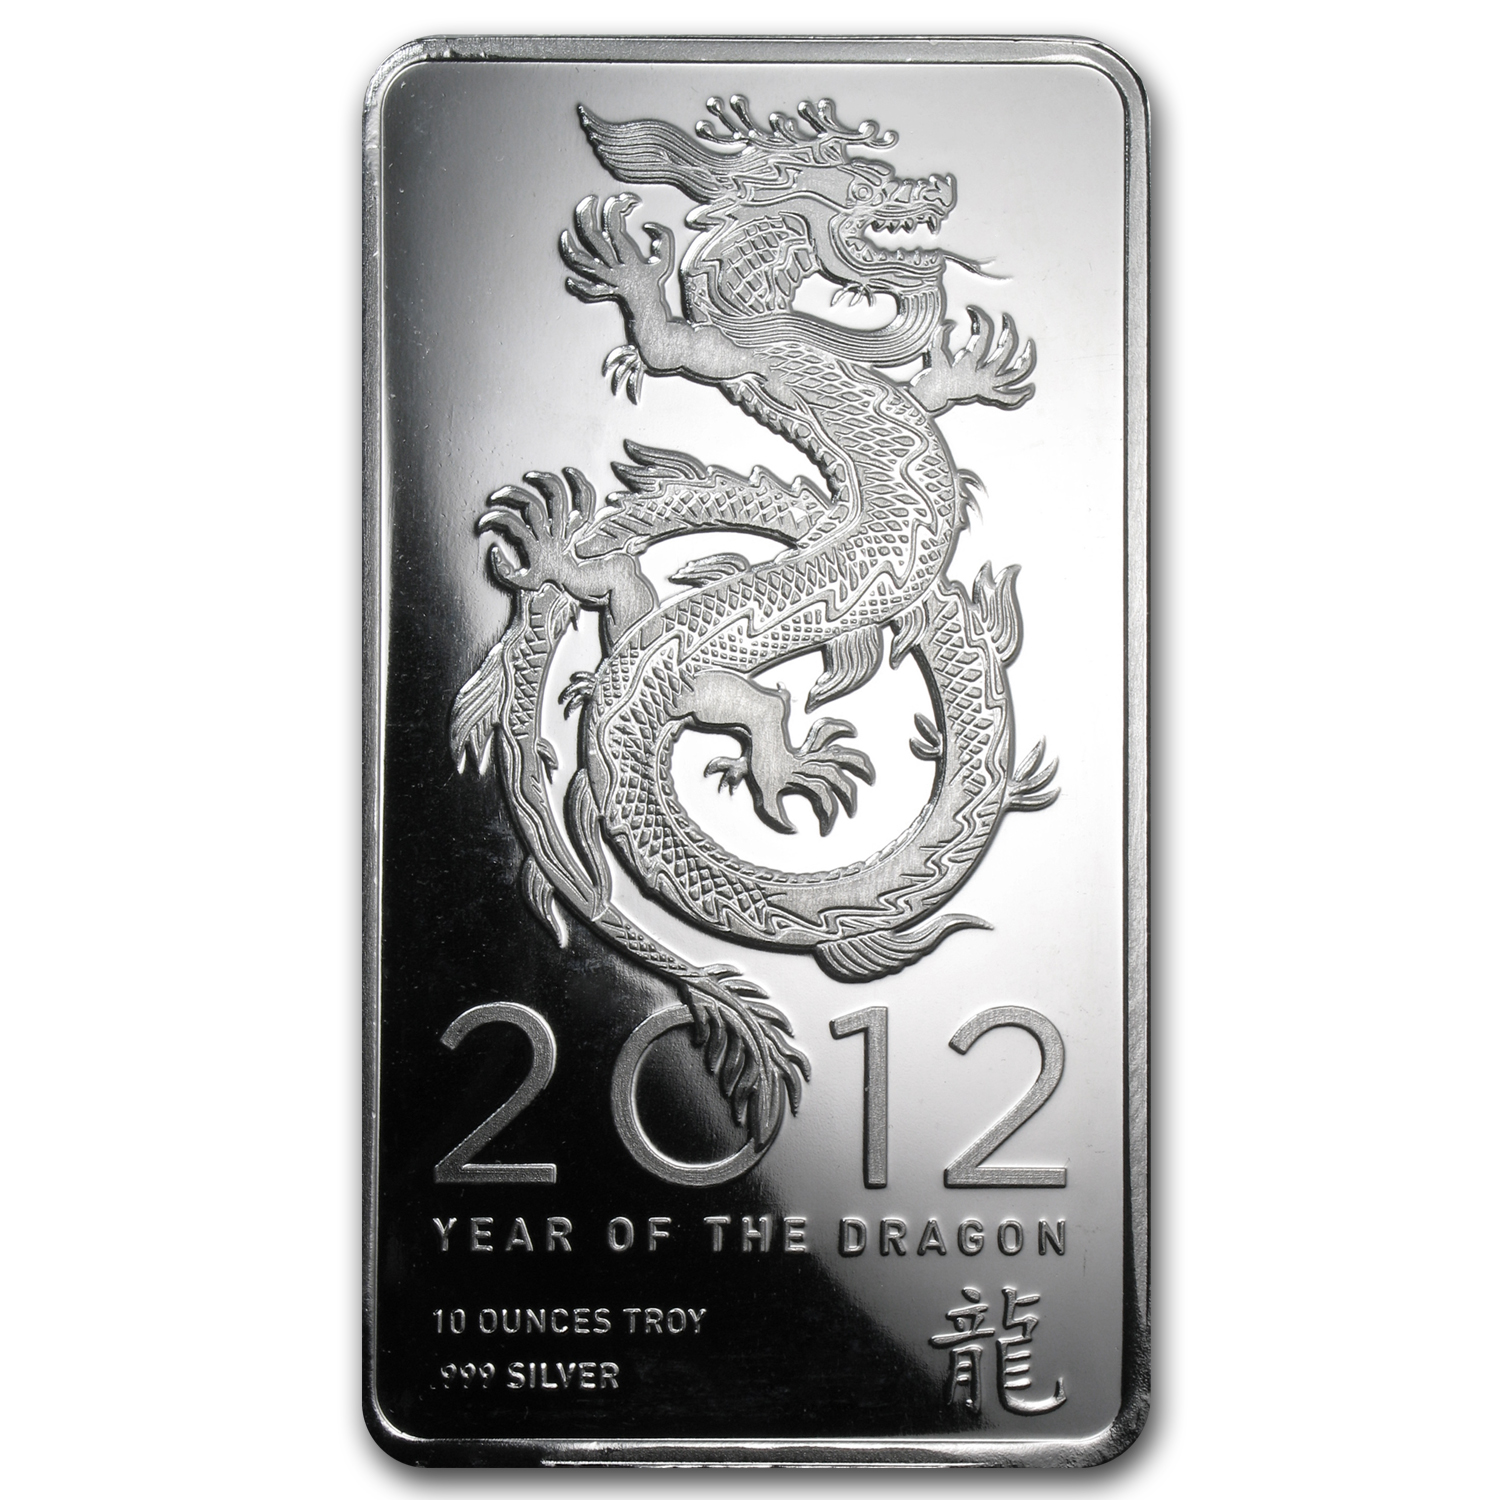 10 oz Silver Bars - Year of the Dragon (2012)